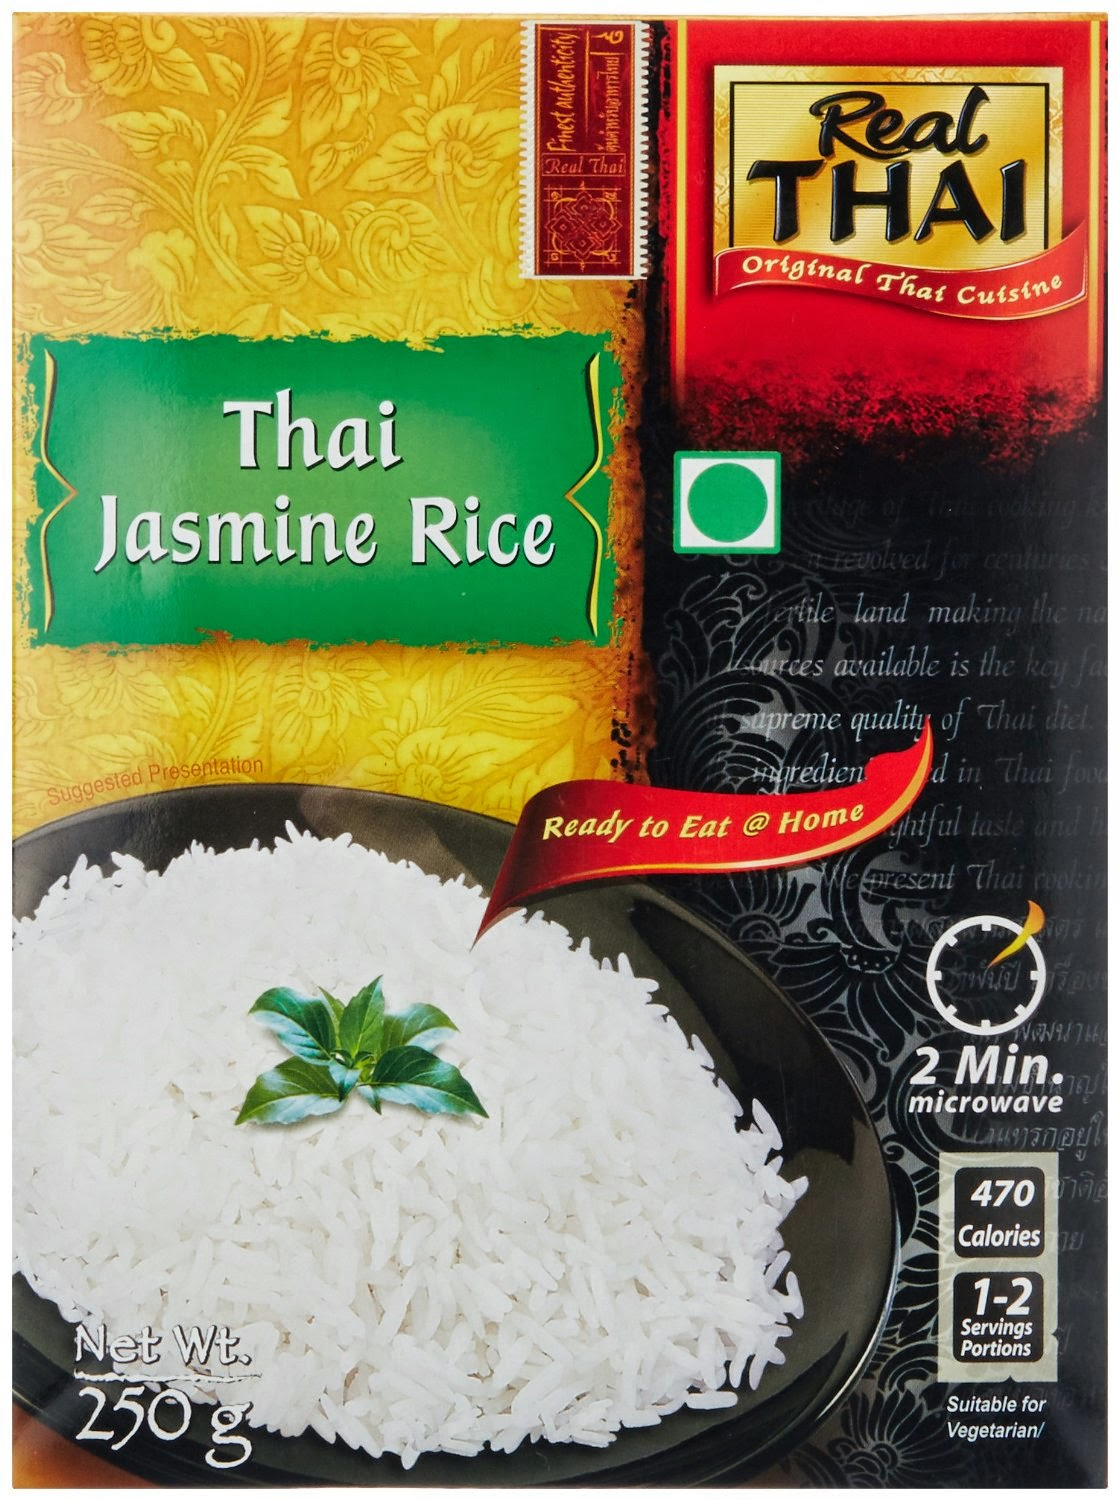 Excellent white grain rice with a jasmine flavour     Selected from the finest varieties in Thailand     Can be stored for a long time at room temperature     Jasmine Rice makes an aromatic accompaniment to all types of Thai curry